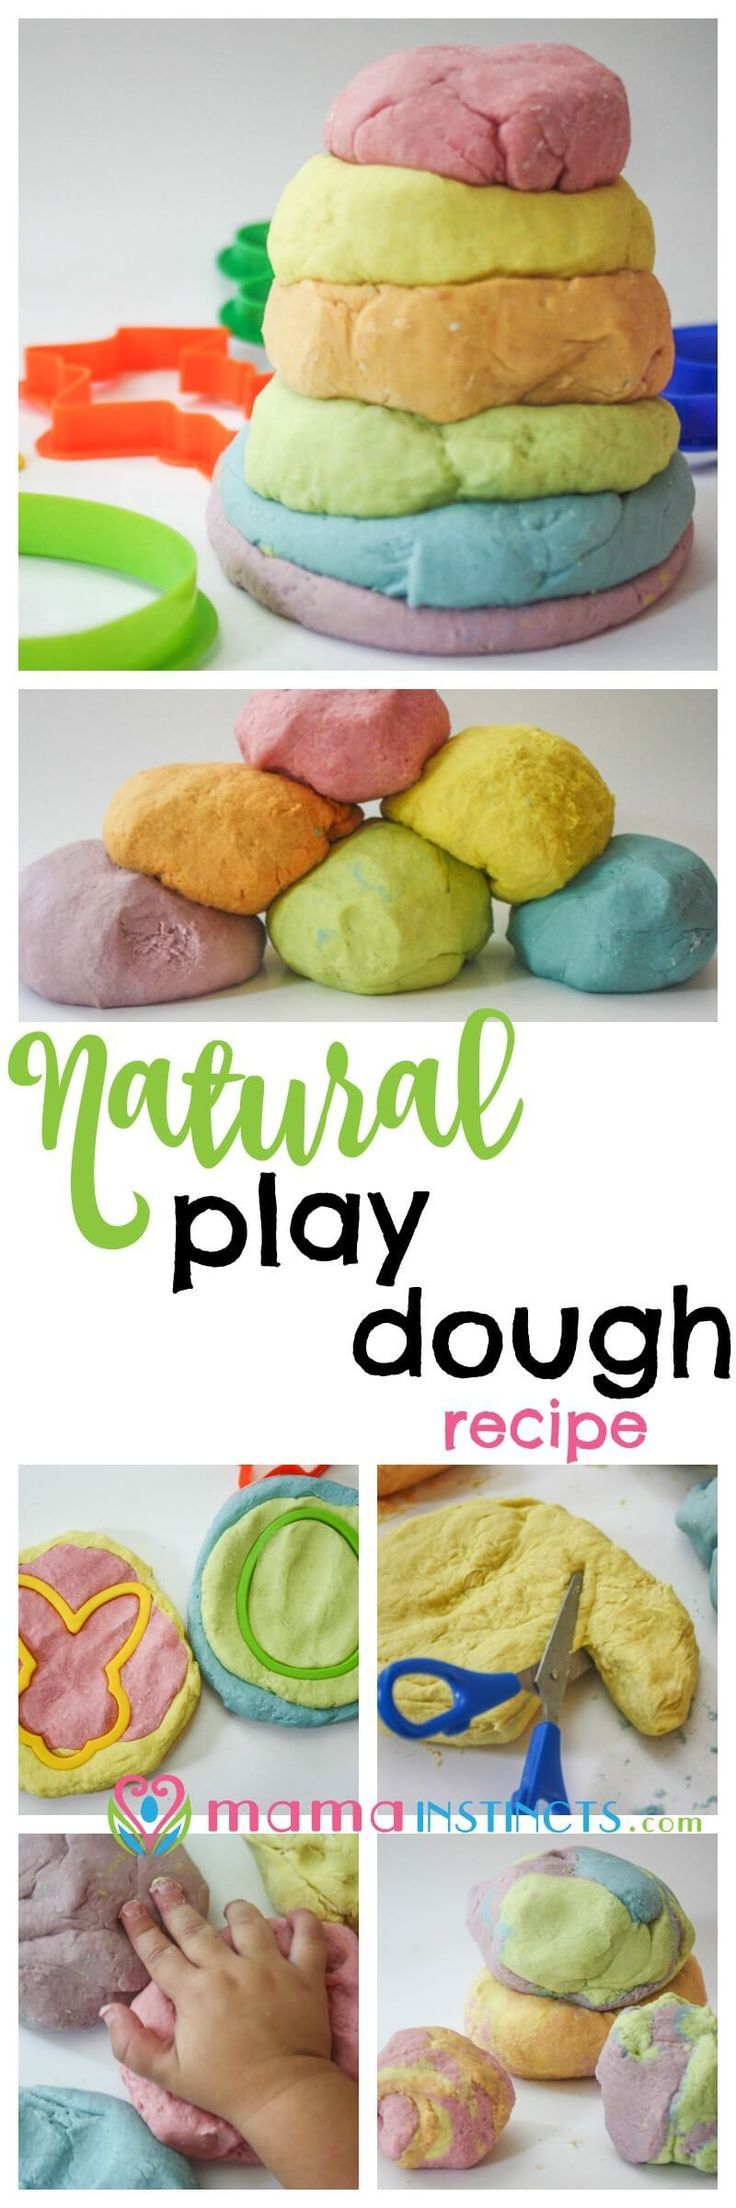 Try this recipe and stop worrying about your kid putting play dough in their mouth. It's safe, non-toxic and easy to make. The best part is that it's made with ingredients you find in any kitchen. Try this natural play dough recipe today or pin it for lat